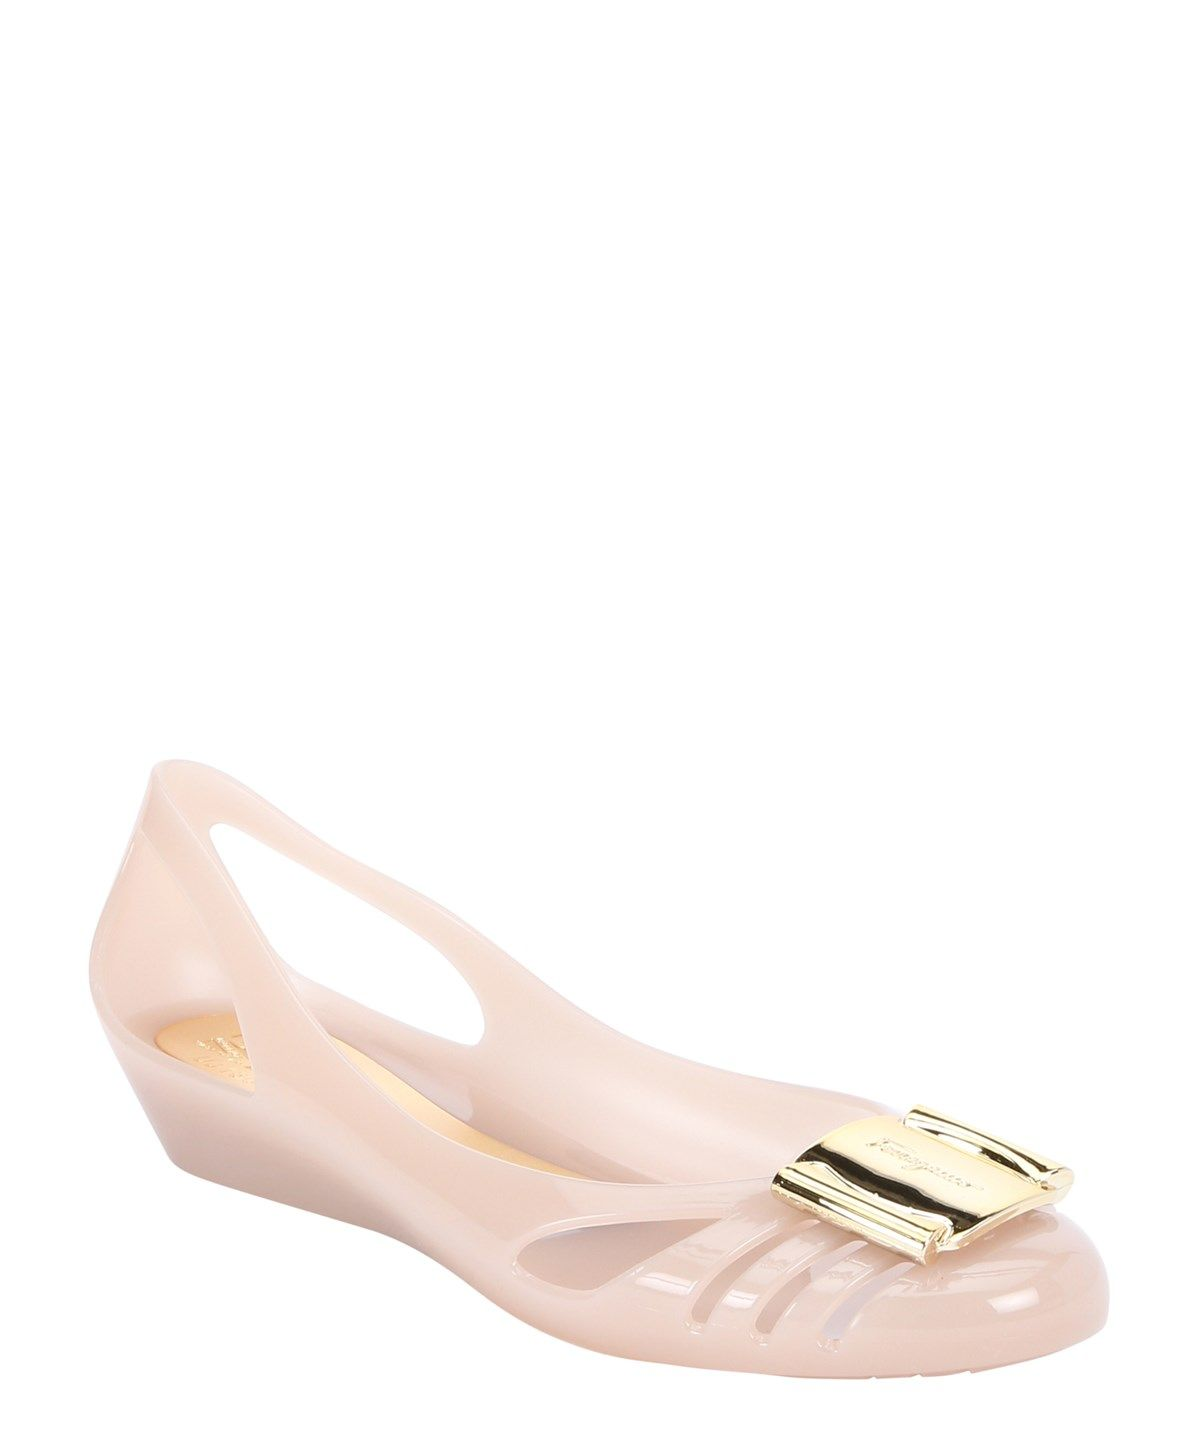 2daffc1e0dfb SALVATORE FERRAGAMO Macaron Pvc Cut-Out  Bermuda  Jelly Ballet Flats .   salvatoreferragamo  shoes  flats